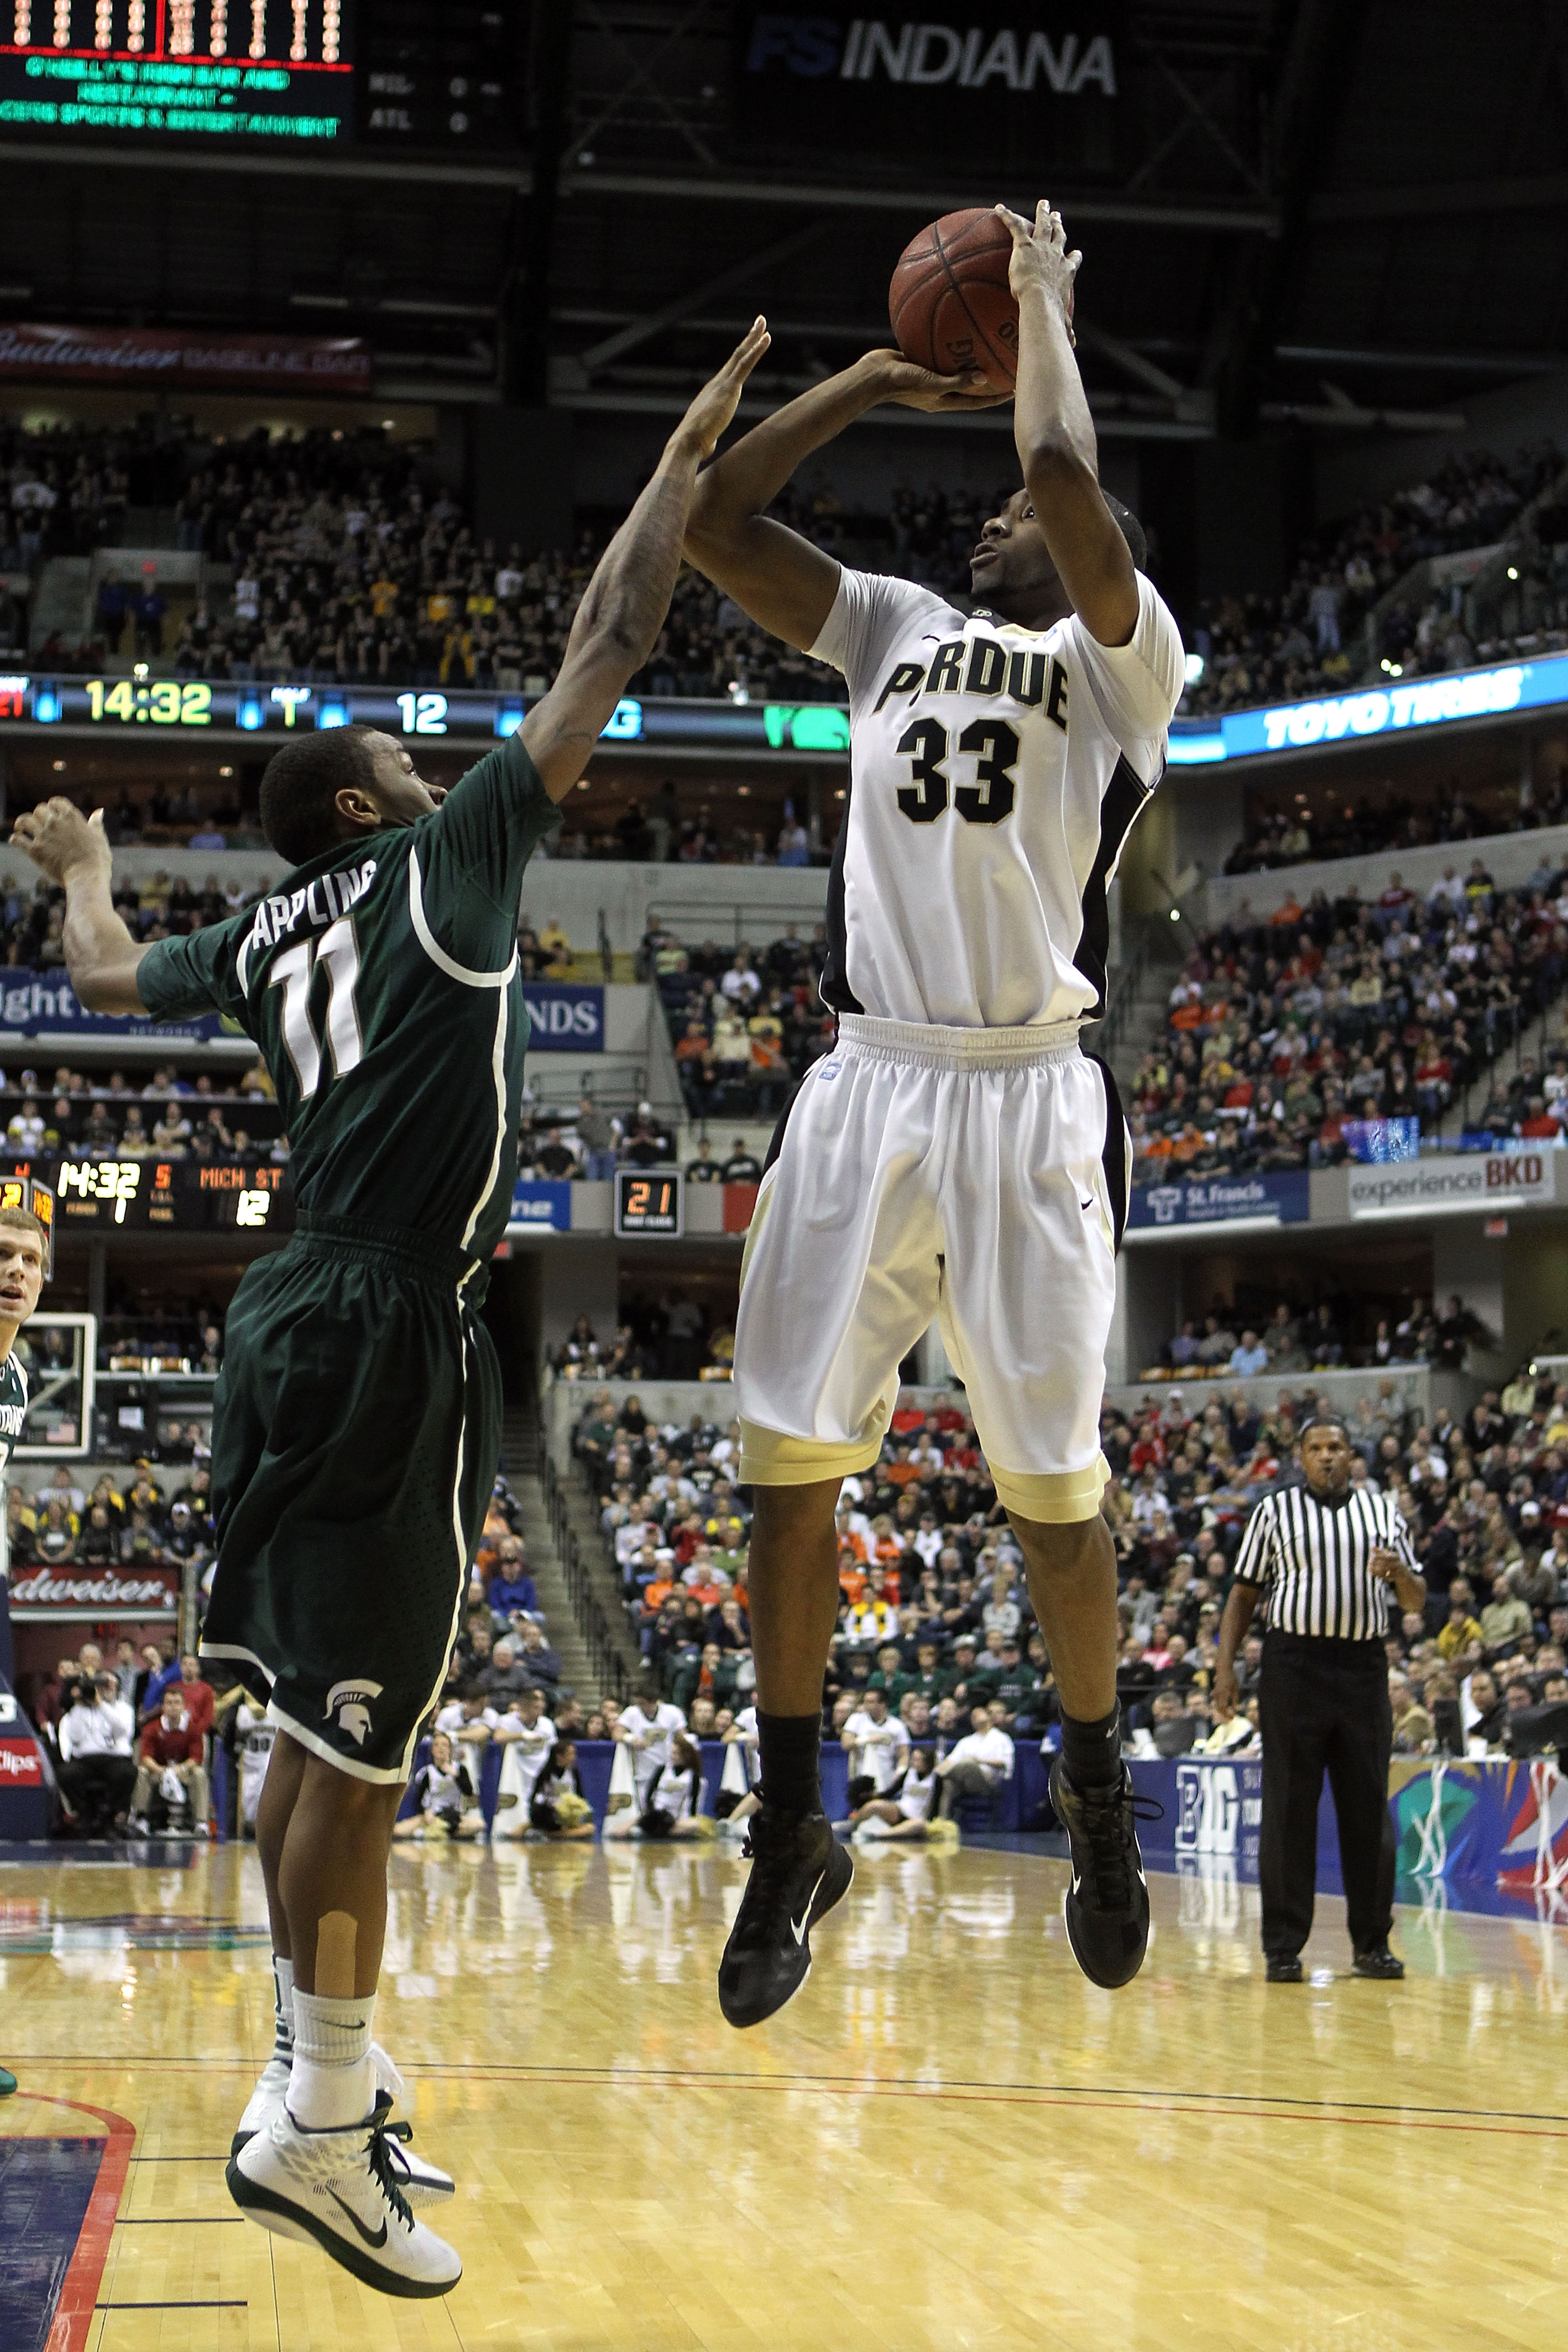 INDIANAPOLIS, IN - MARCH 11:  E'Twaun Moore #33 of the Purdue Boilermakers attempts a shot against Keith Appling #11 of the Michigan State Spartans during the quarterfinals of the 2011 Big Ten Men's Basketball Tournament at Conseco Fieldhouse on March 11,